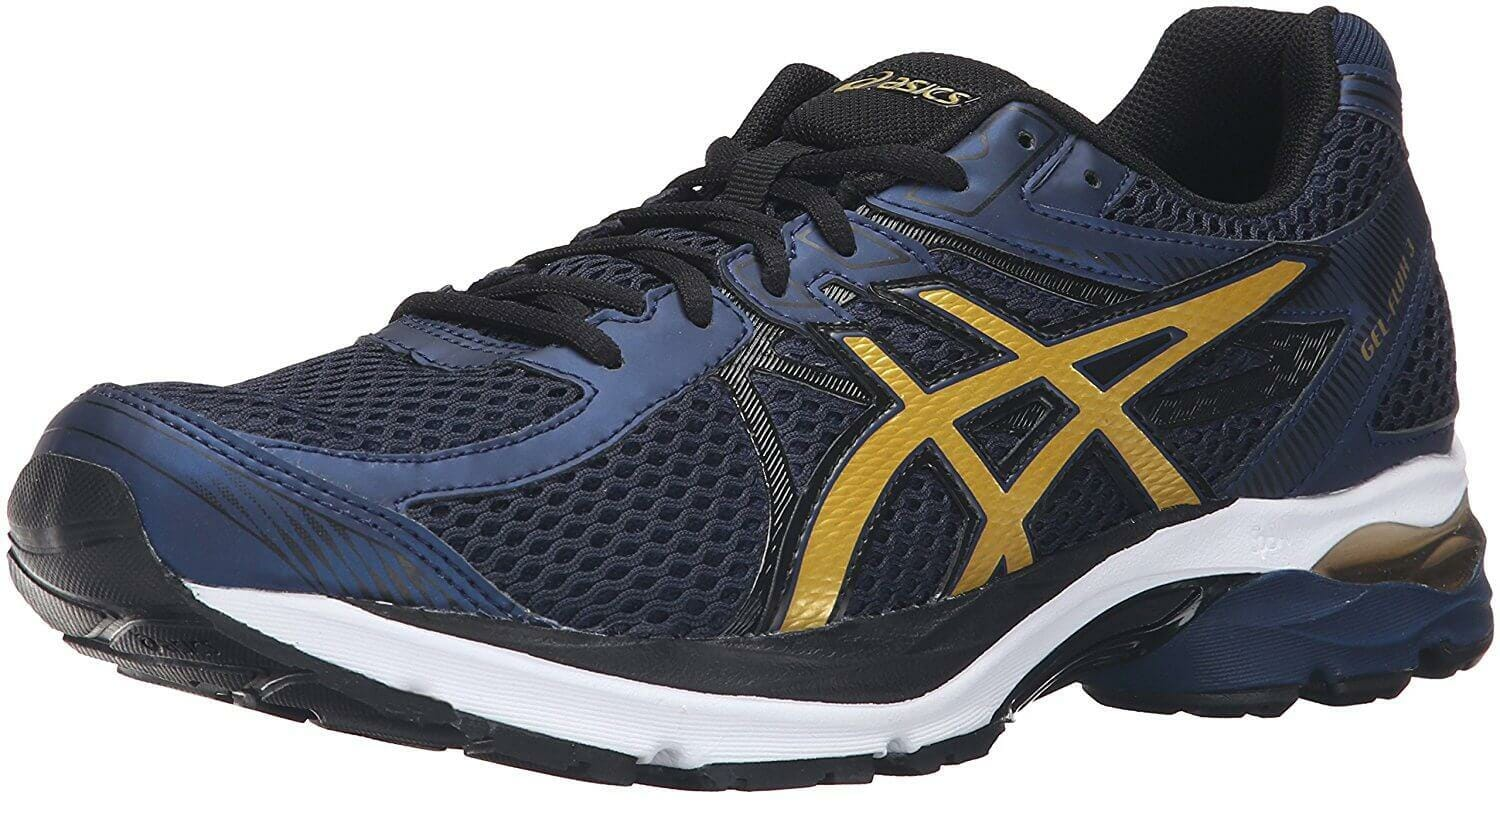 Asics Gel Flux 5 Overview | Running Shoes Guru